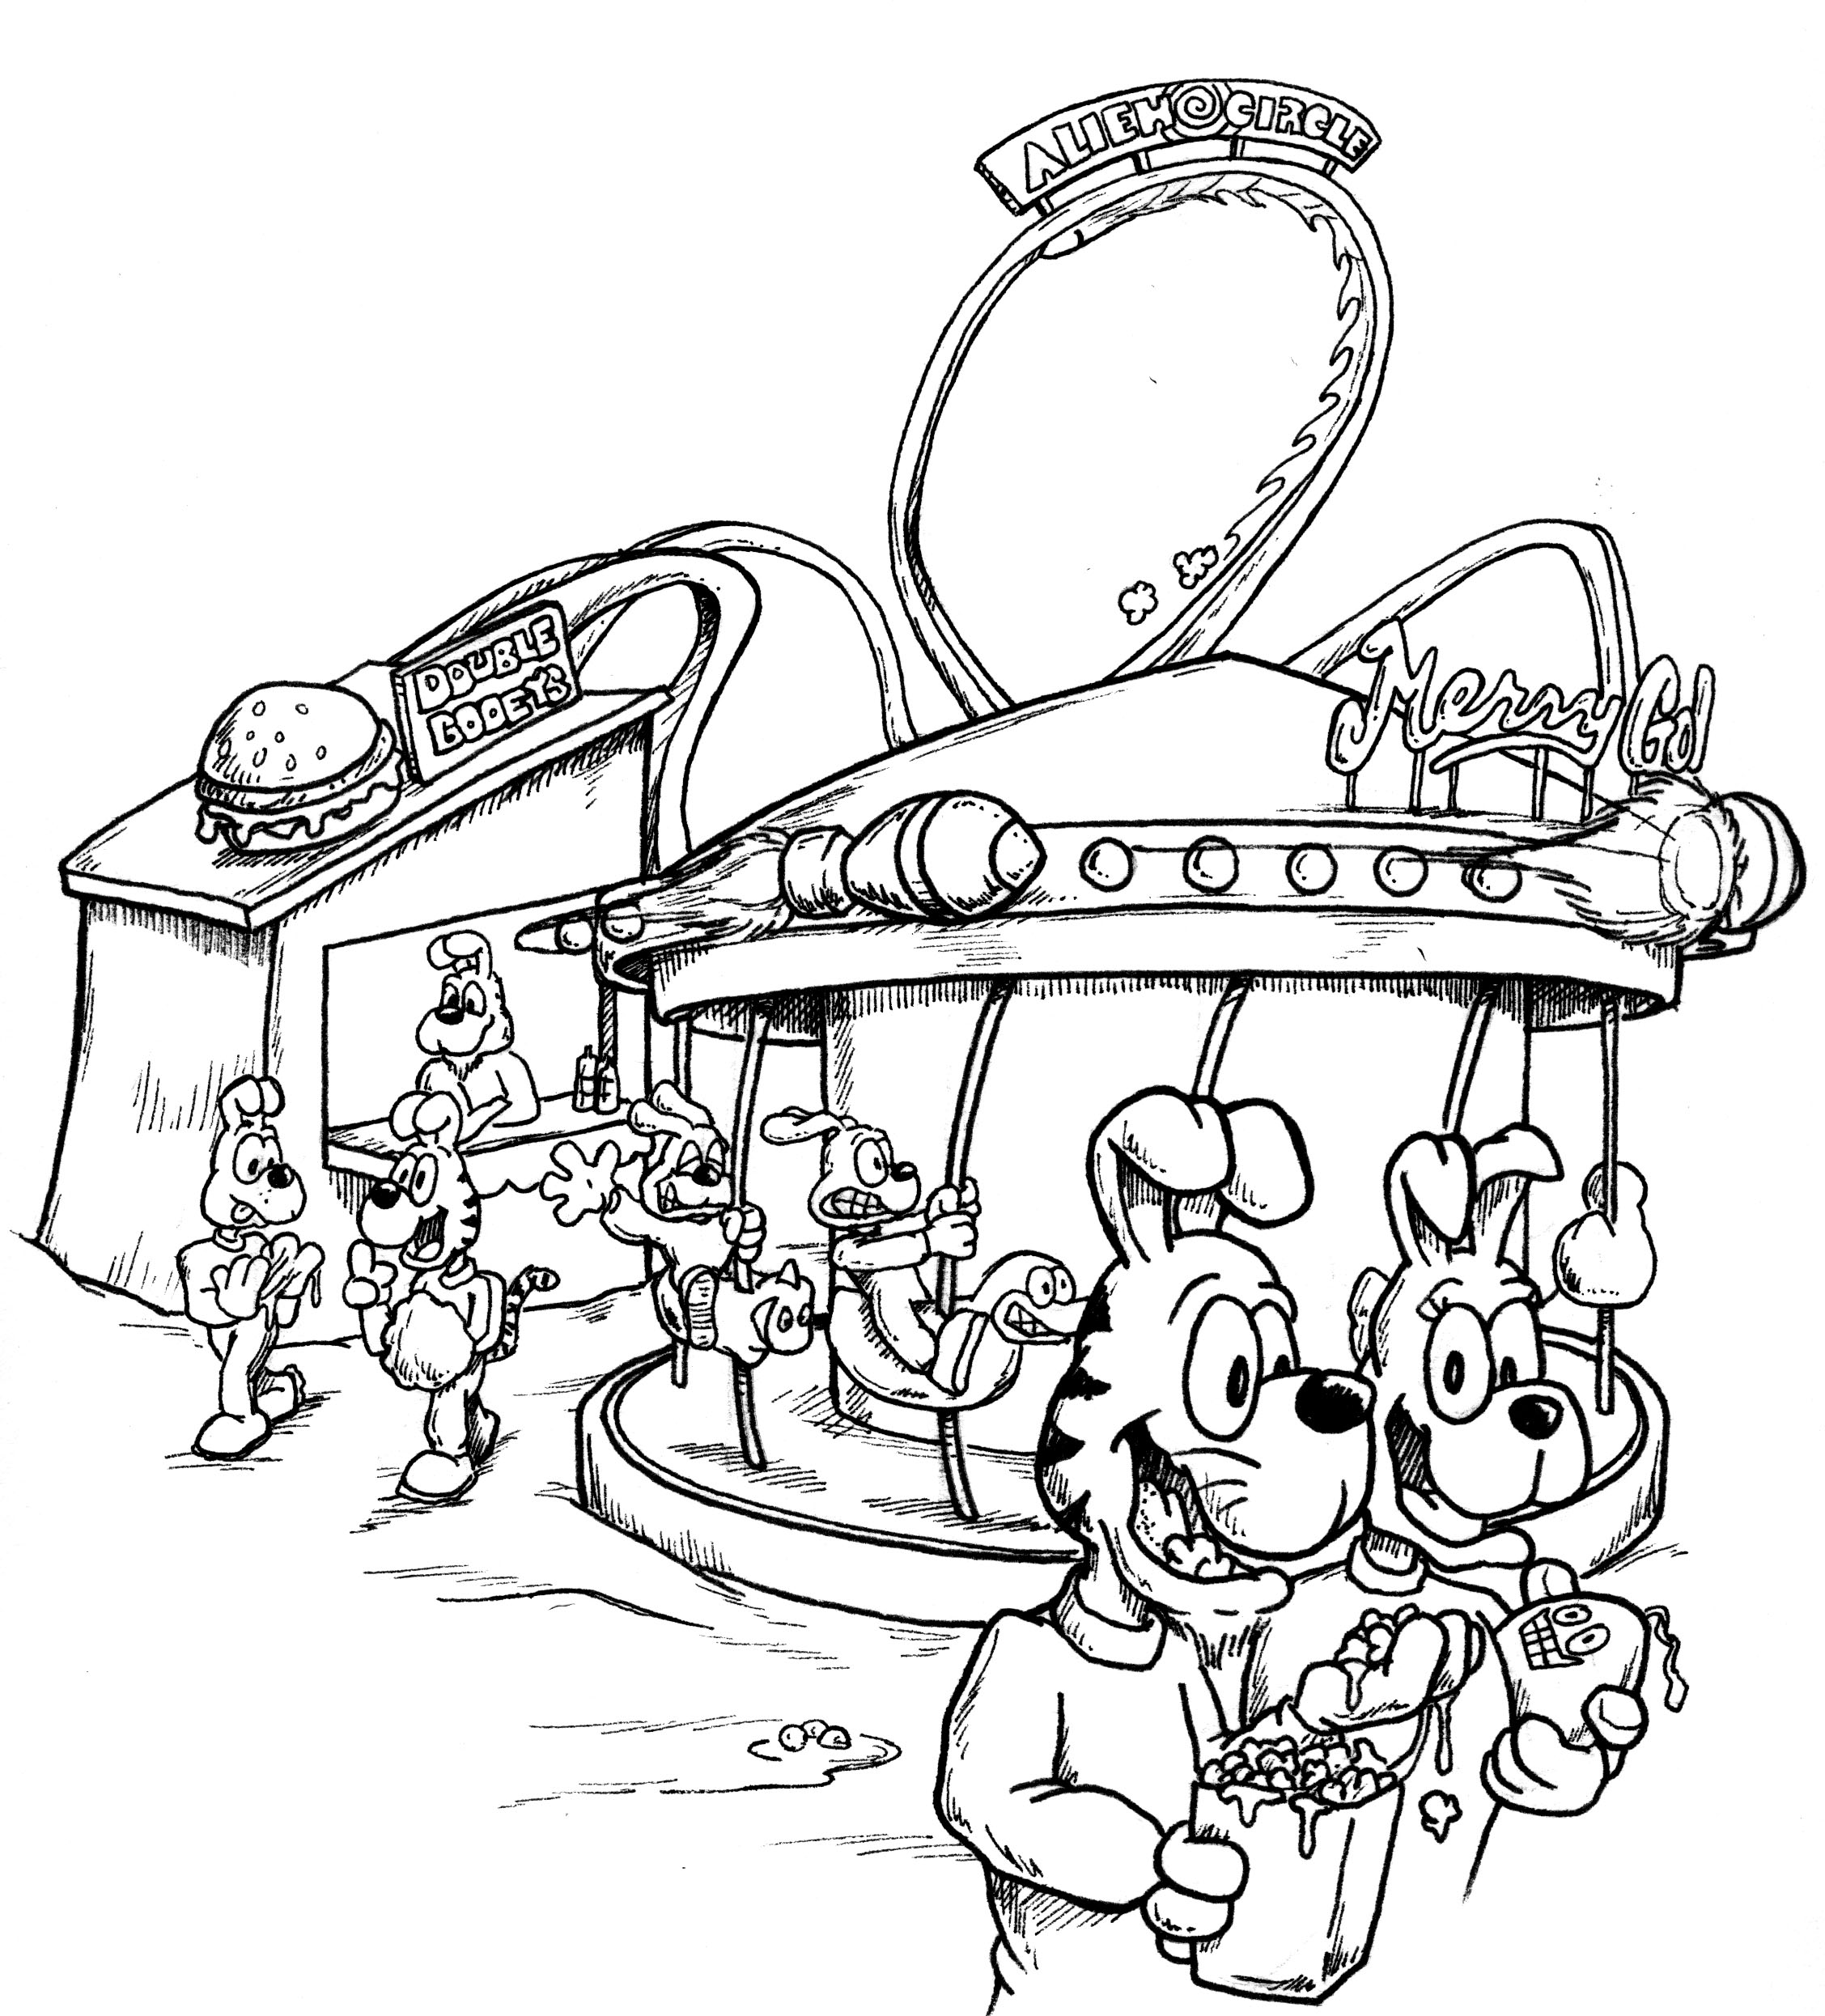 fun fair coloring pages - photo#18